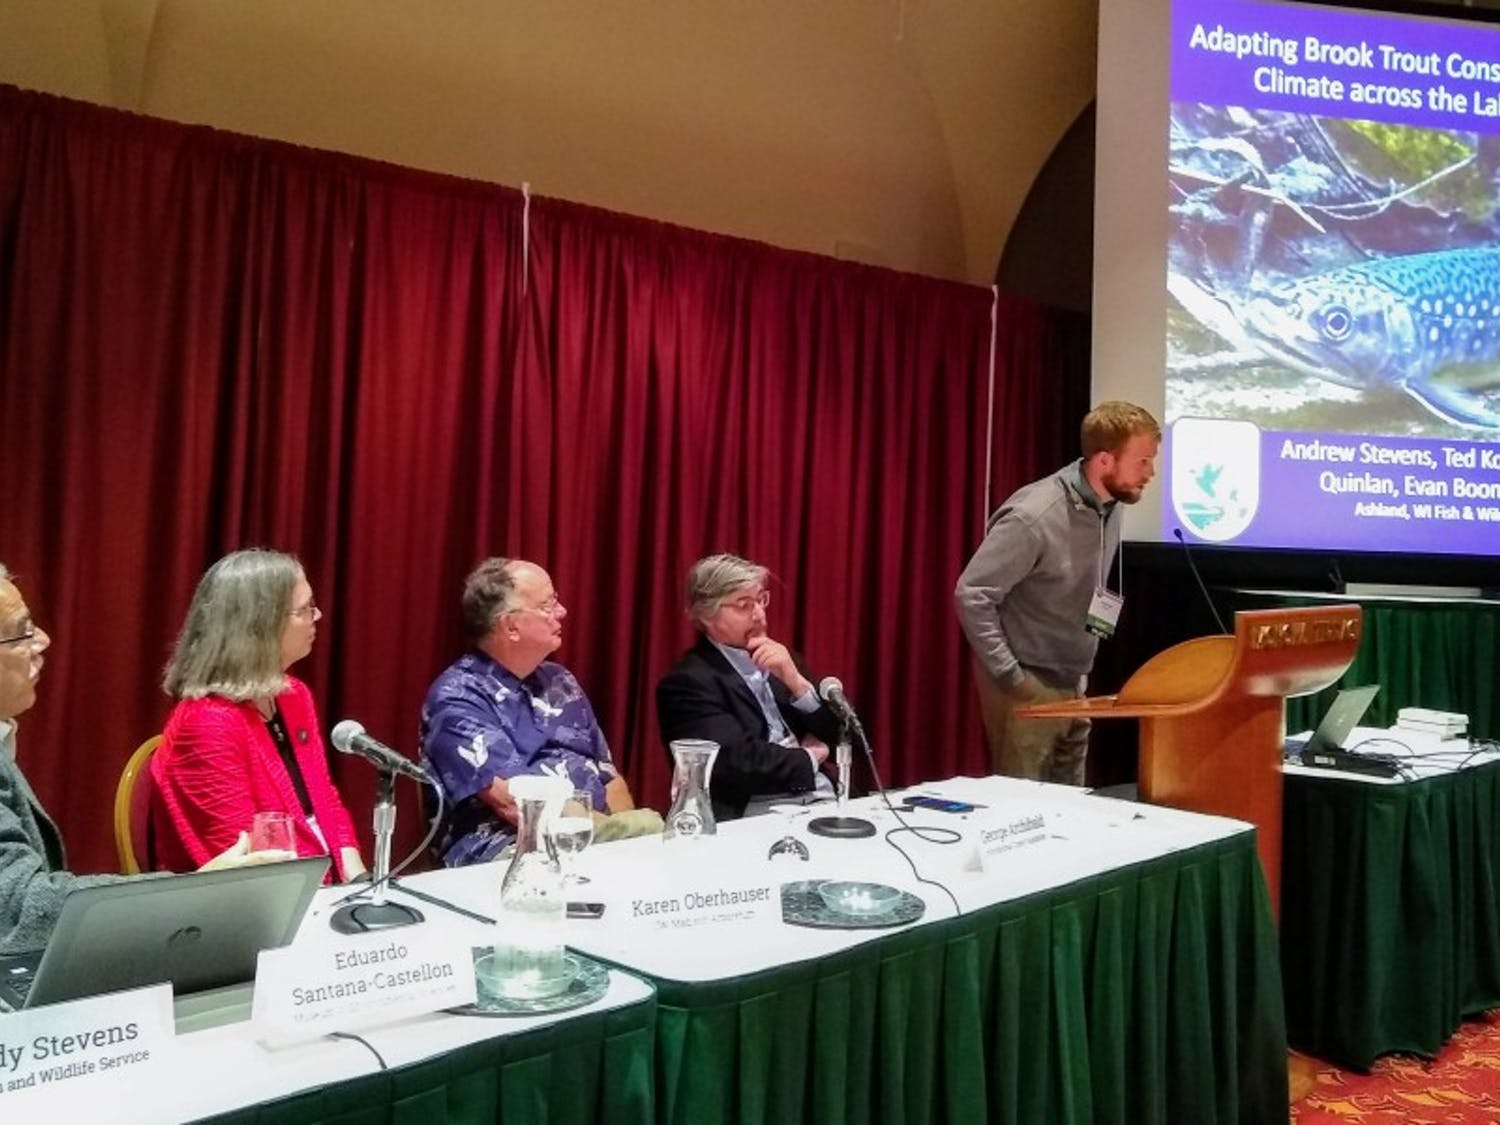 A conference at Monona Terrace hosted by the Nelson Institute showcased climate research and opened discussions surrounding solutions with hopes of encouraging social and environmental activism.